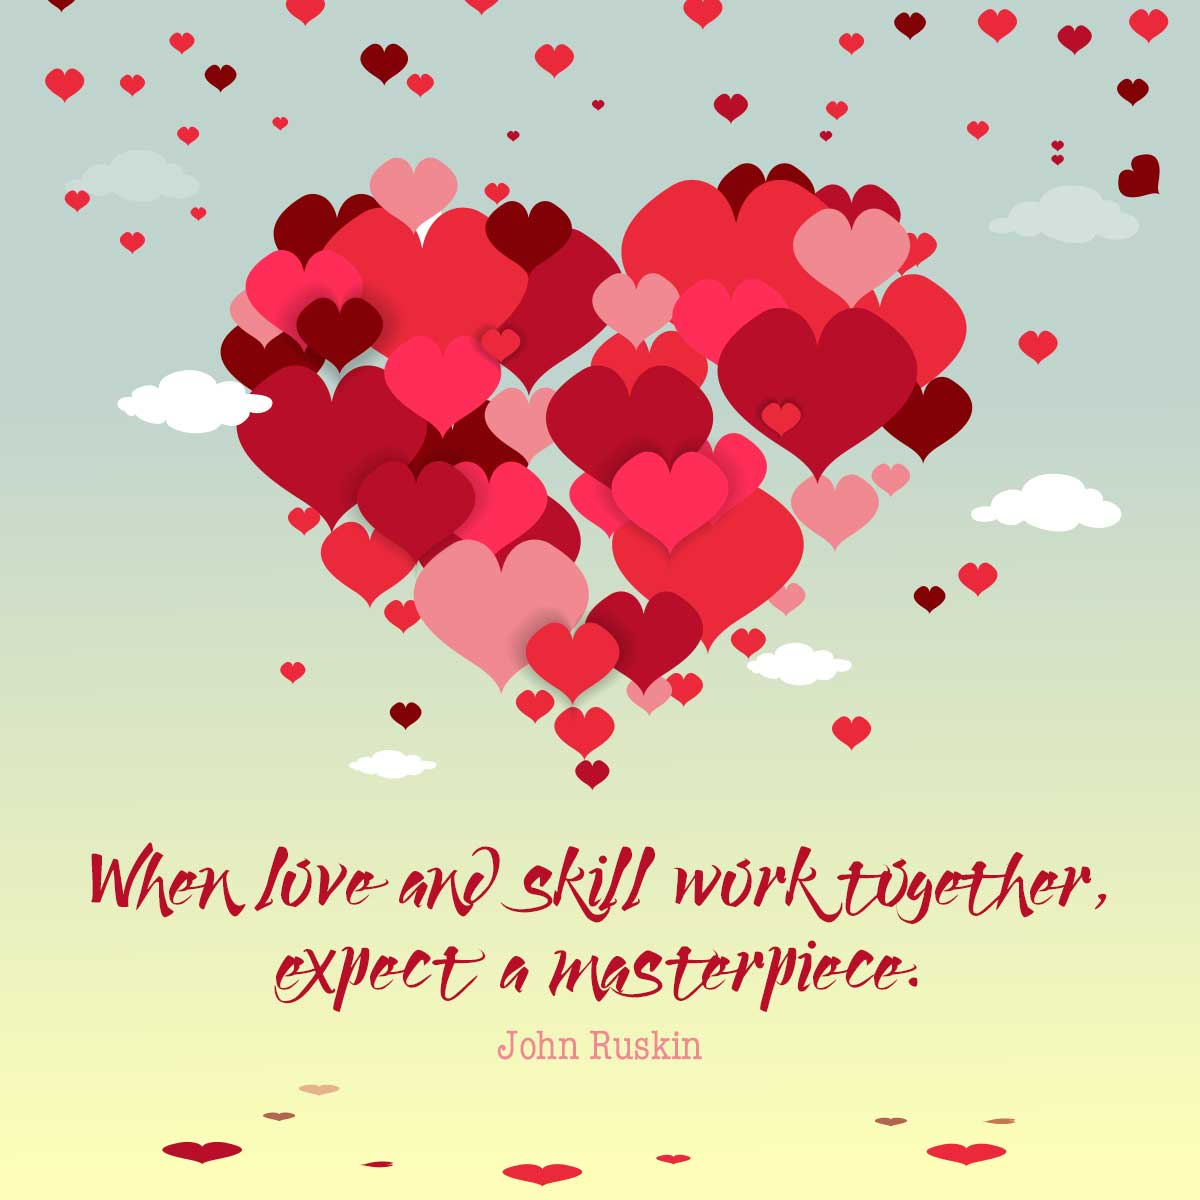 When love and skill work together, expect a masterpiece. John Ruskin Quotes ... From my valentines day quotes and love images.